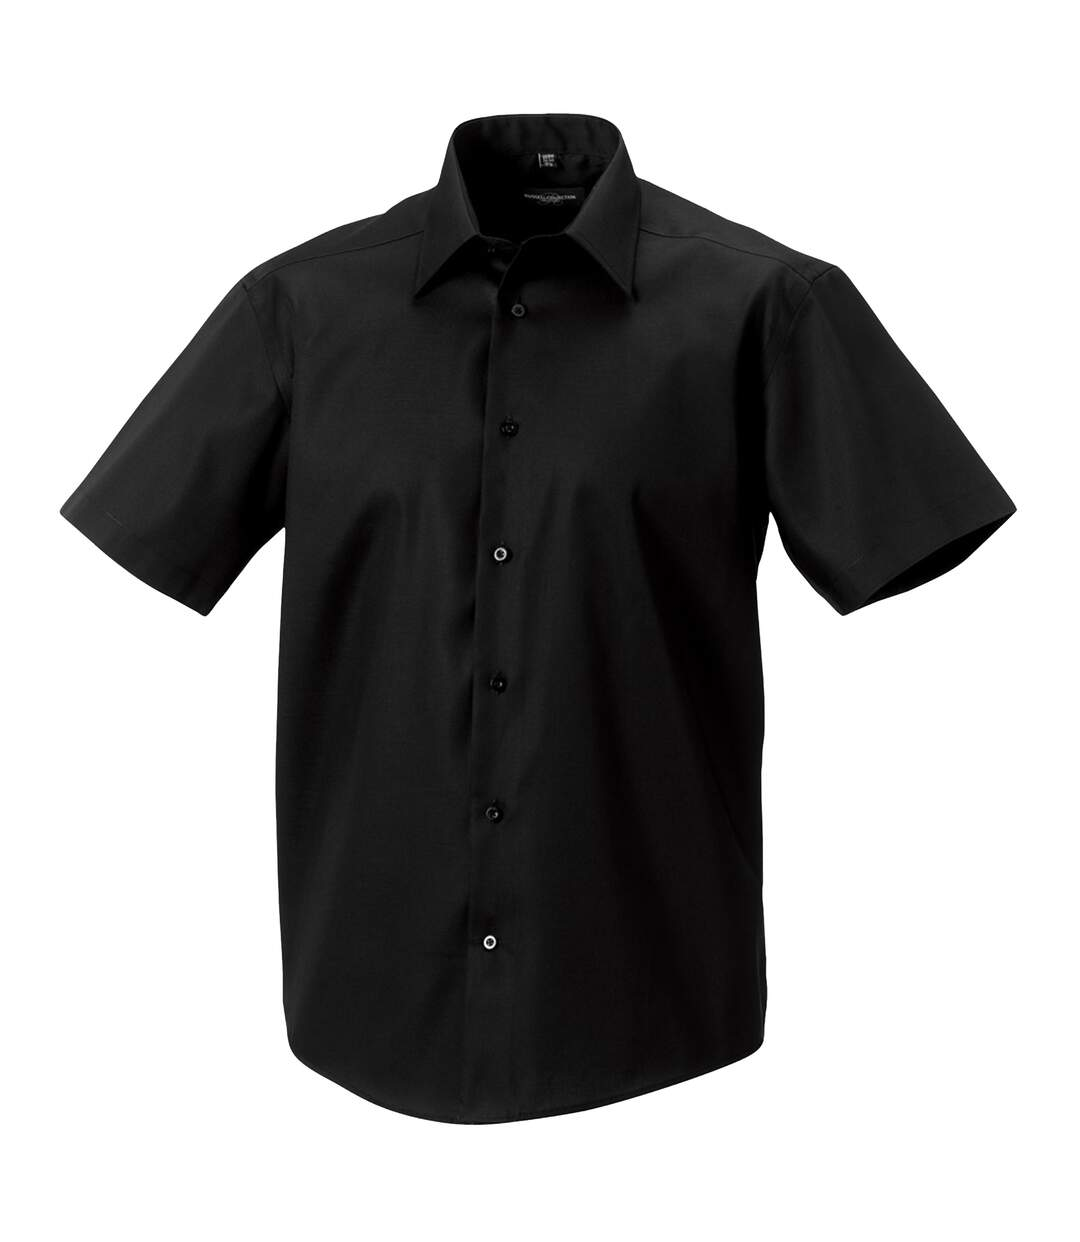 Russell Collection Mens Short Sleeve Tailored Ultimate Non-Iron Shirt (Black) - UTBC1039